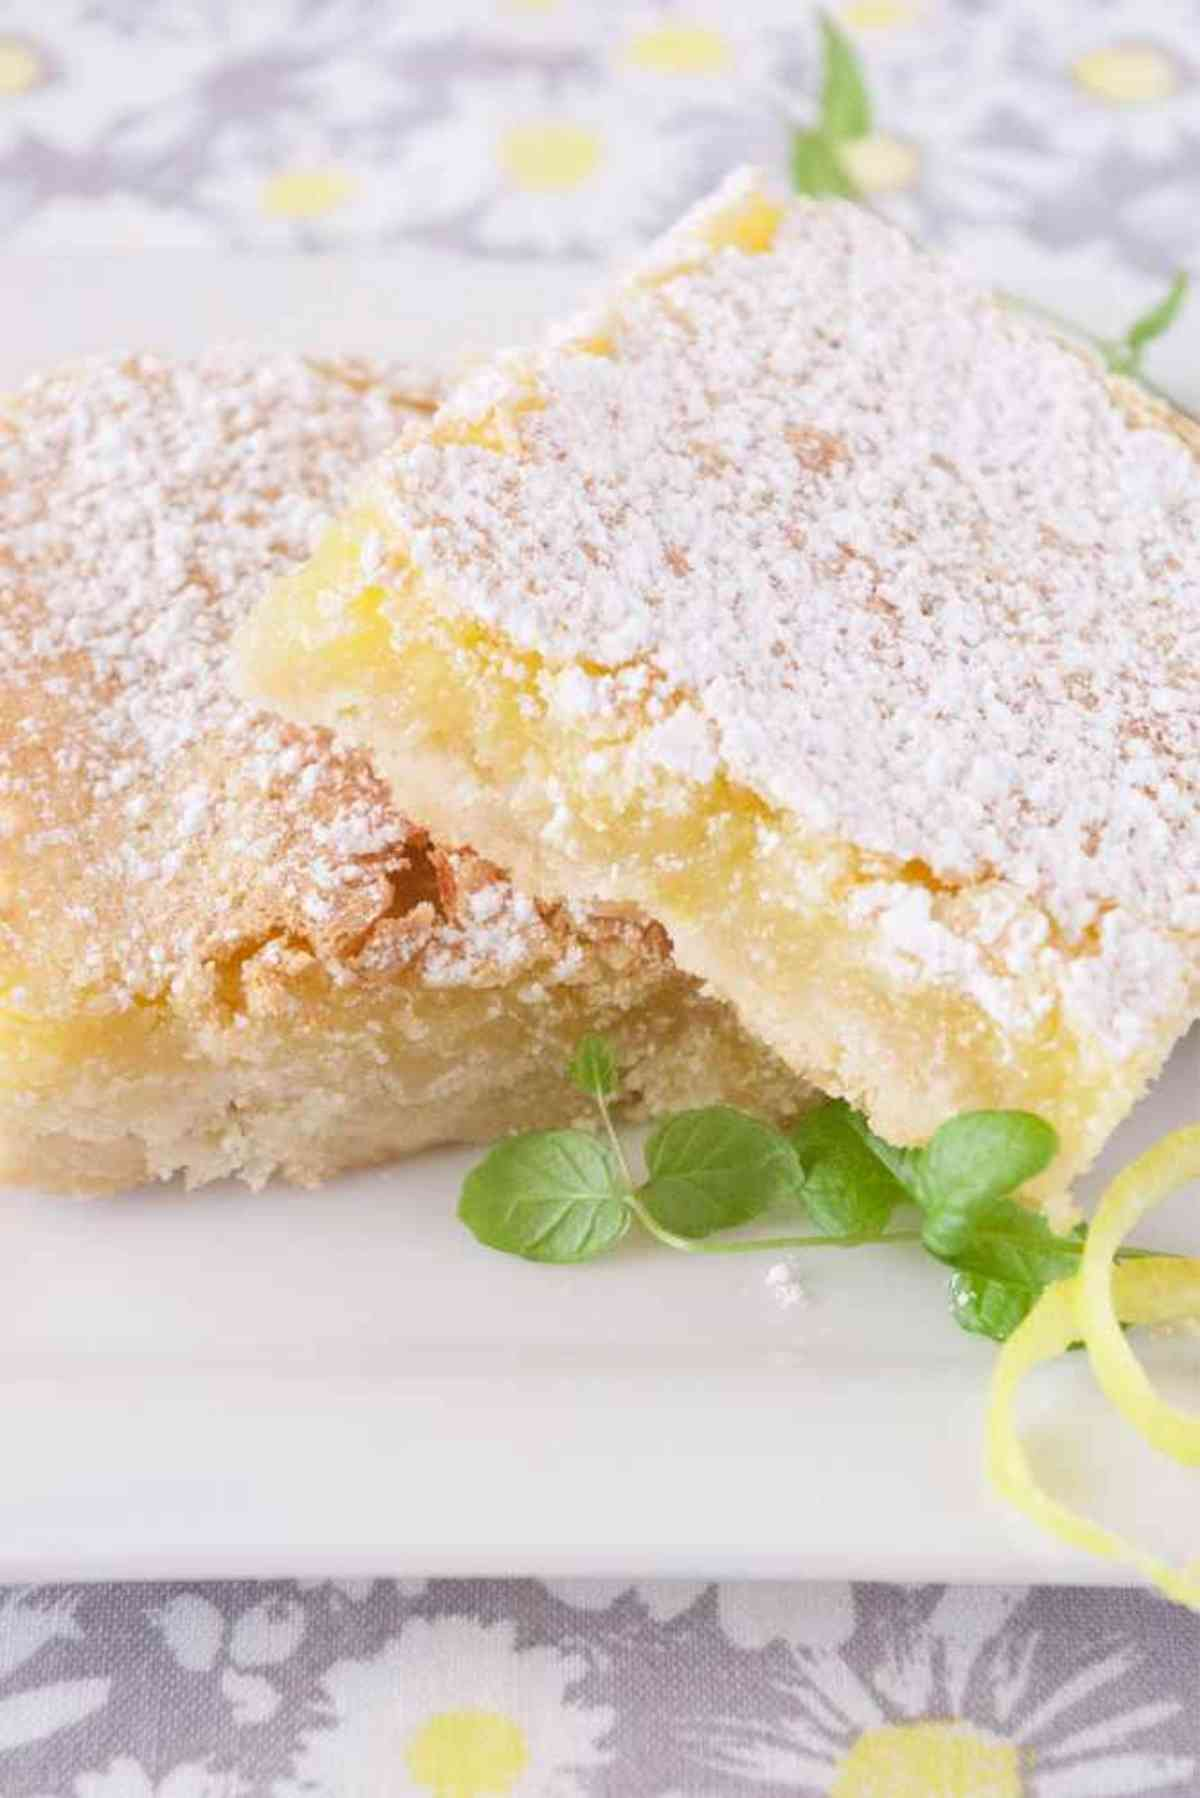 Two lemon bars on a plate garnished with mint.